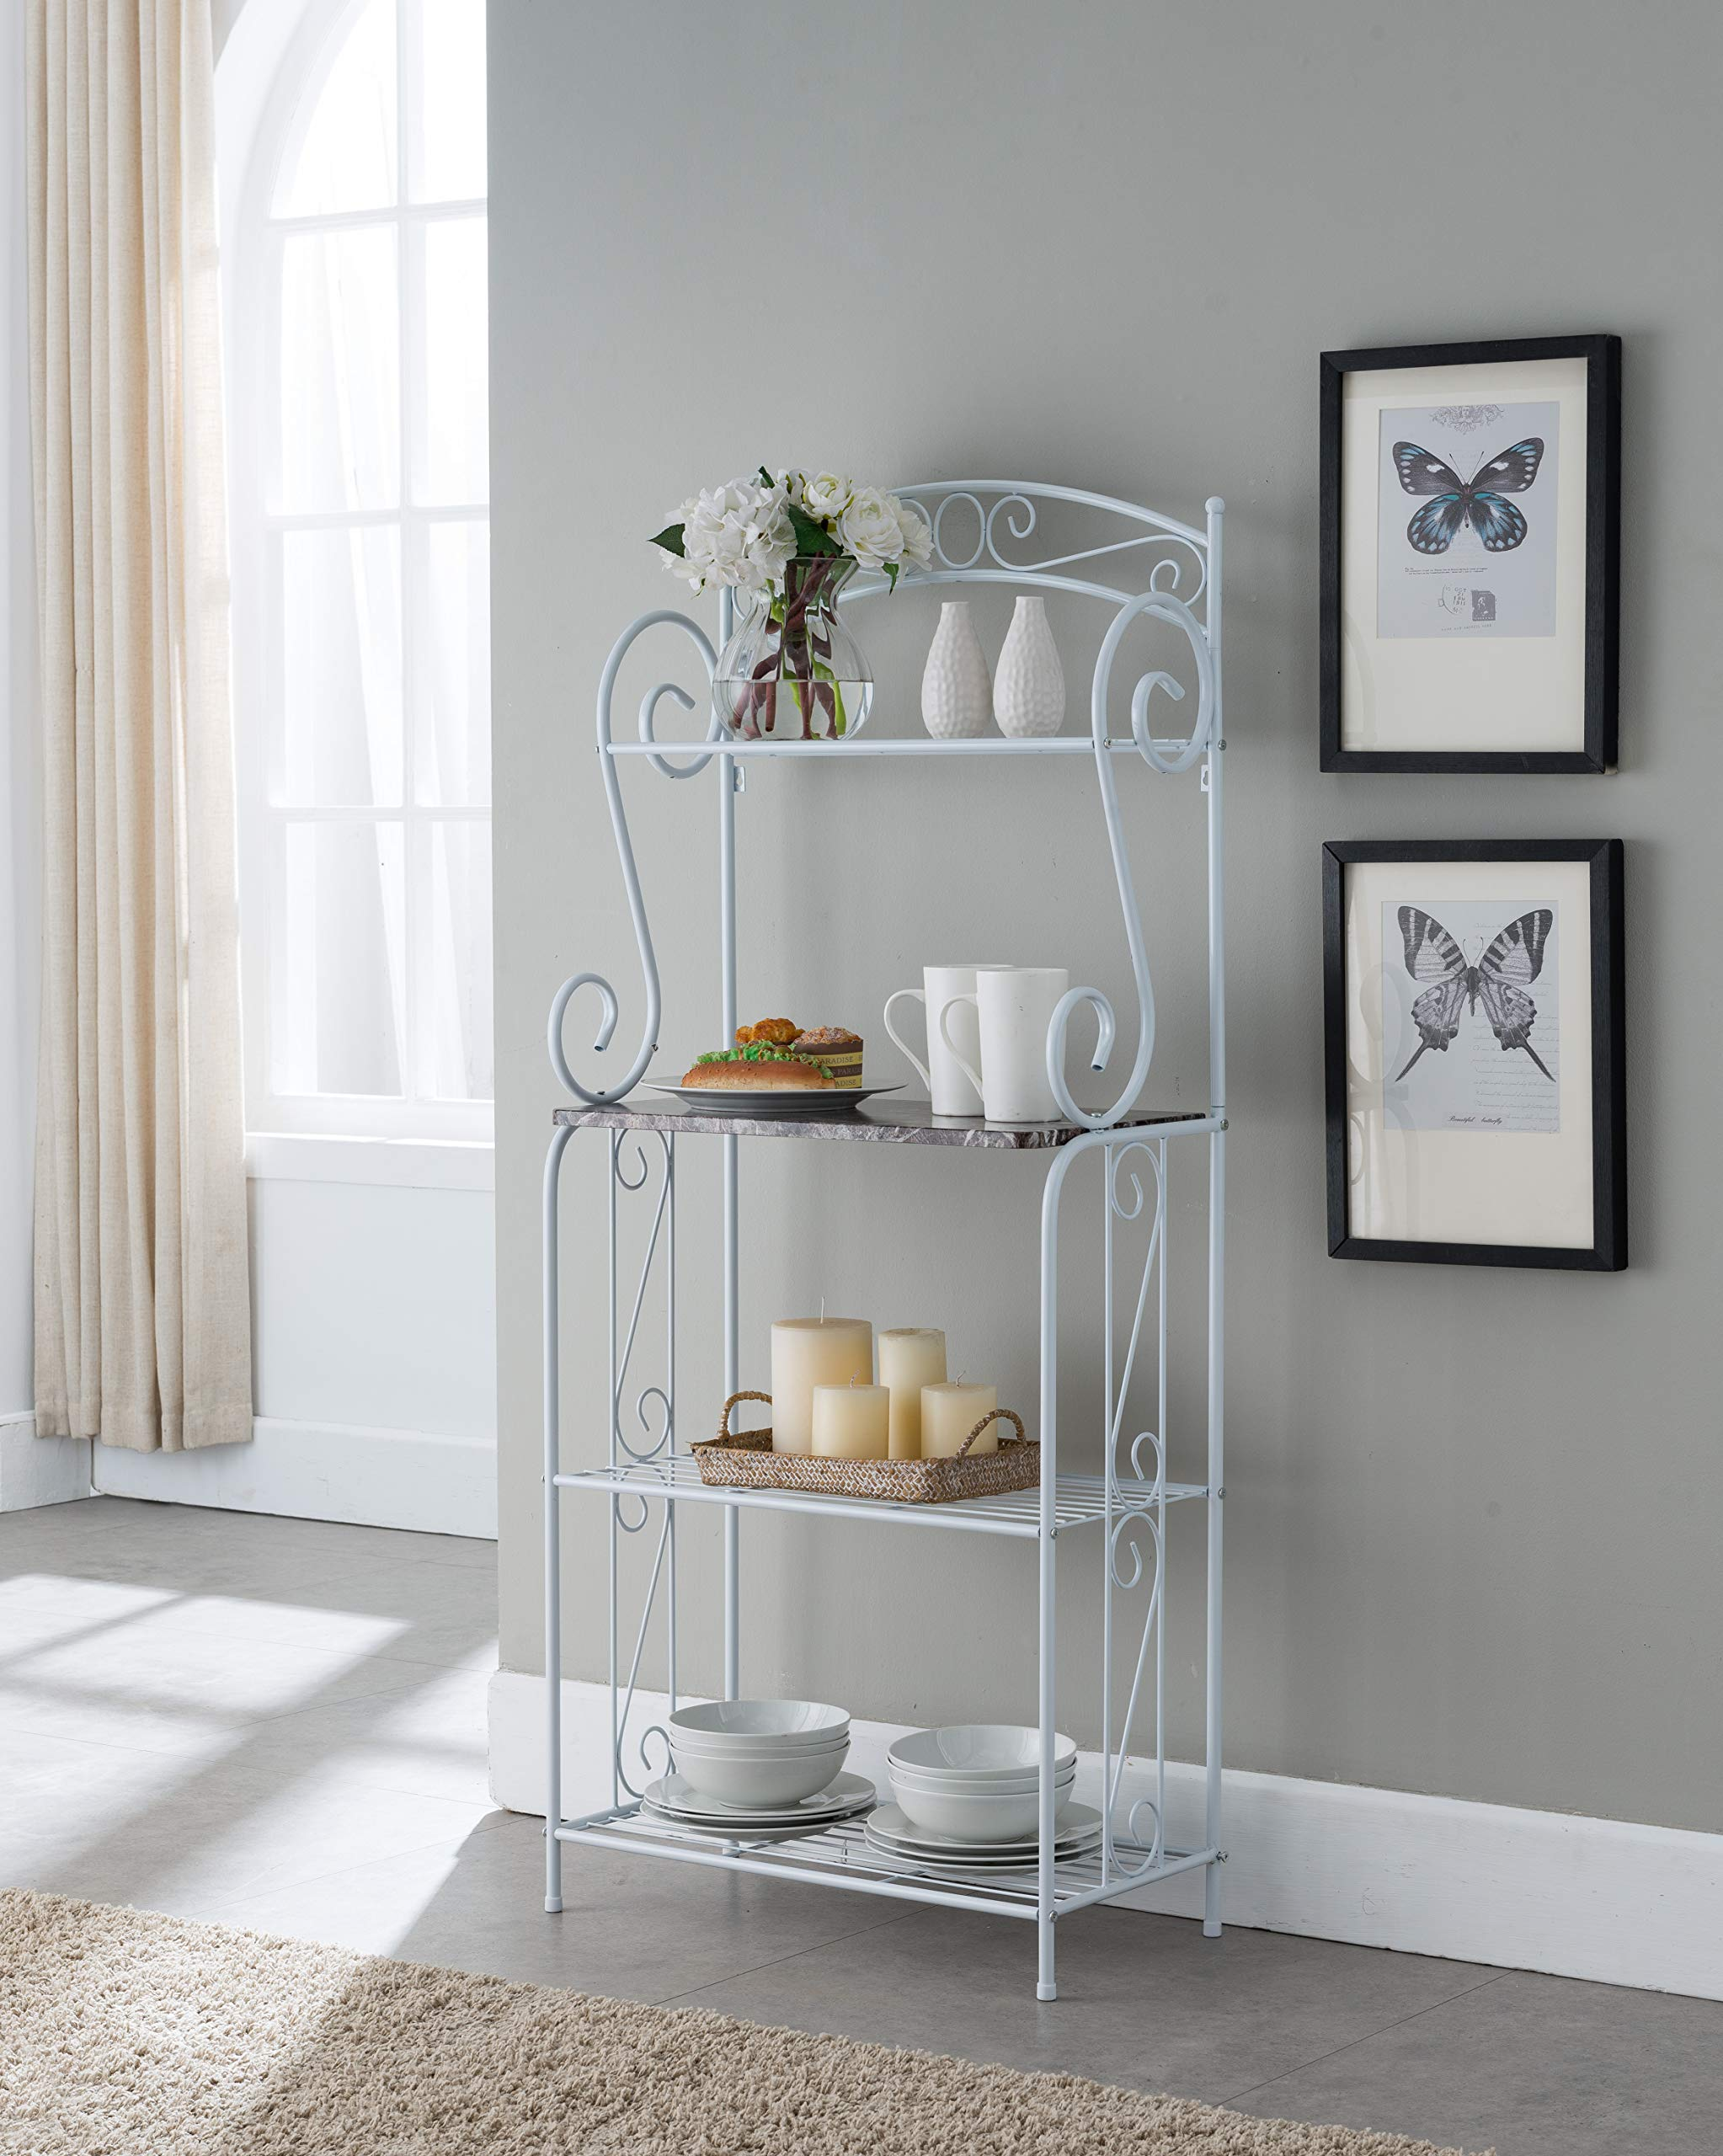 Kings Brand Furniture - Bulberry Metal Kitchen Storage Baker's Rack, White by Kings Brand Furniture